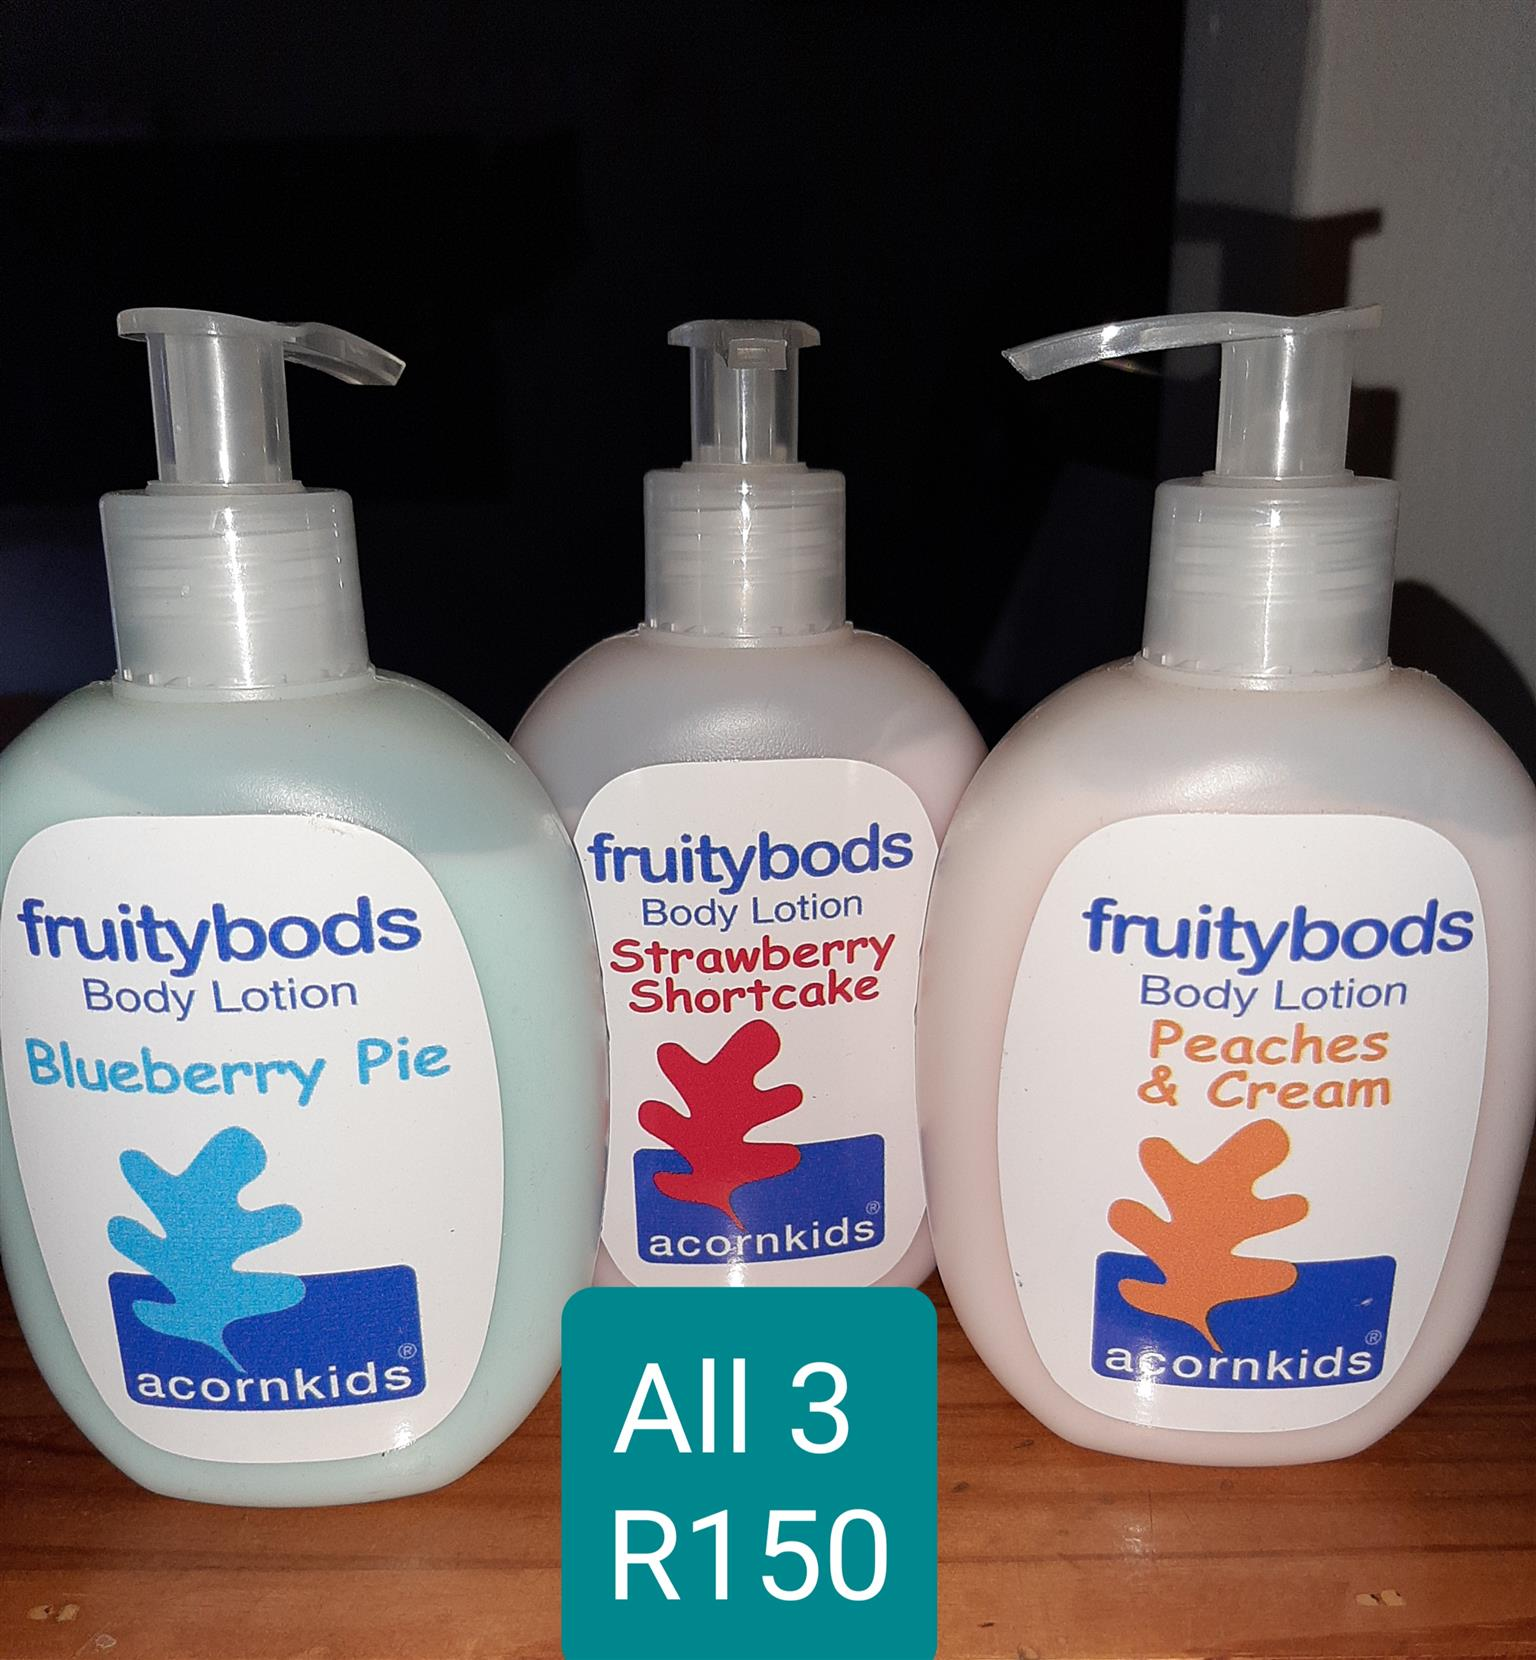 ACORNKIDS BATH PRODUCTS